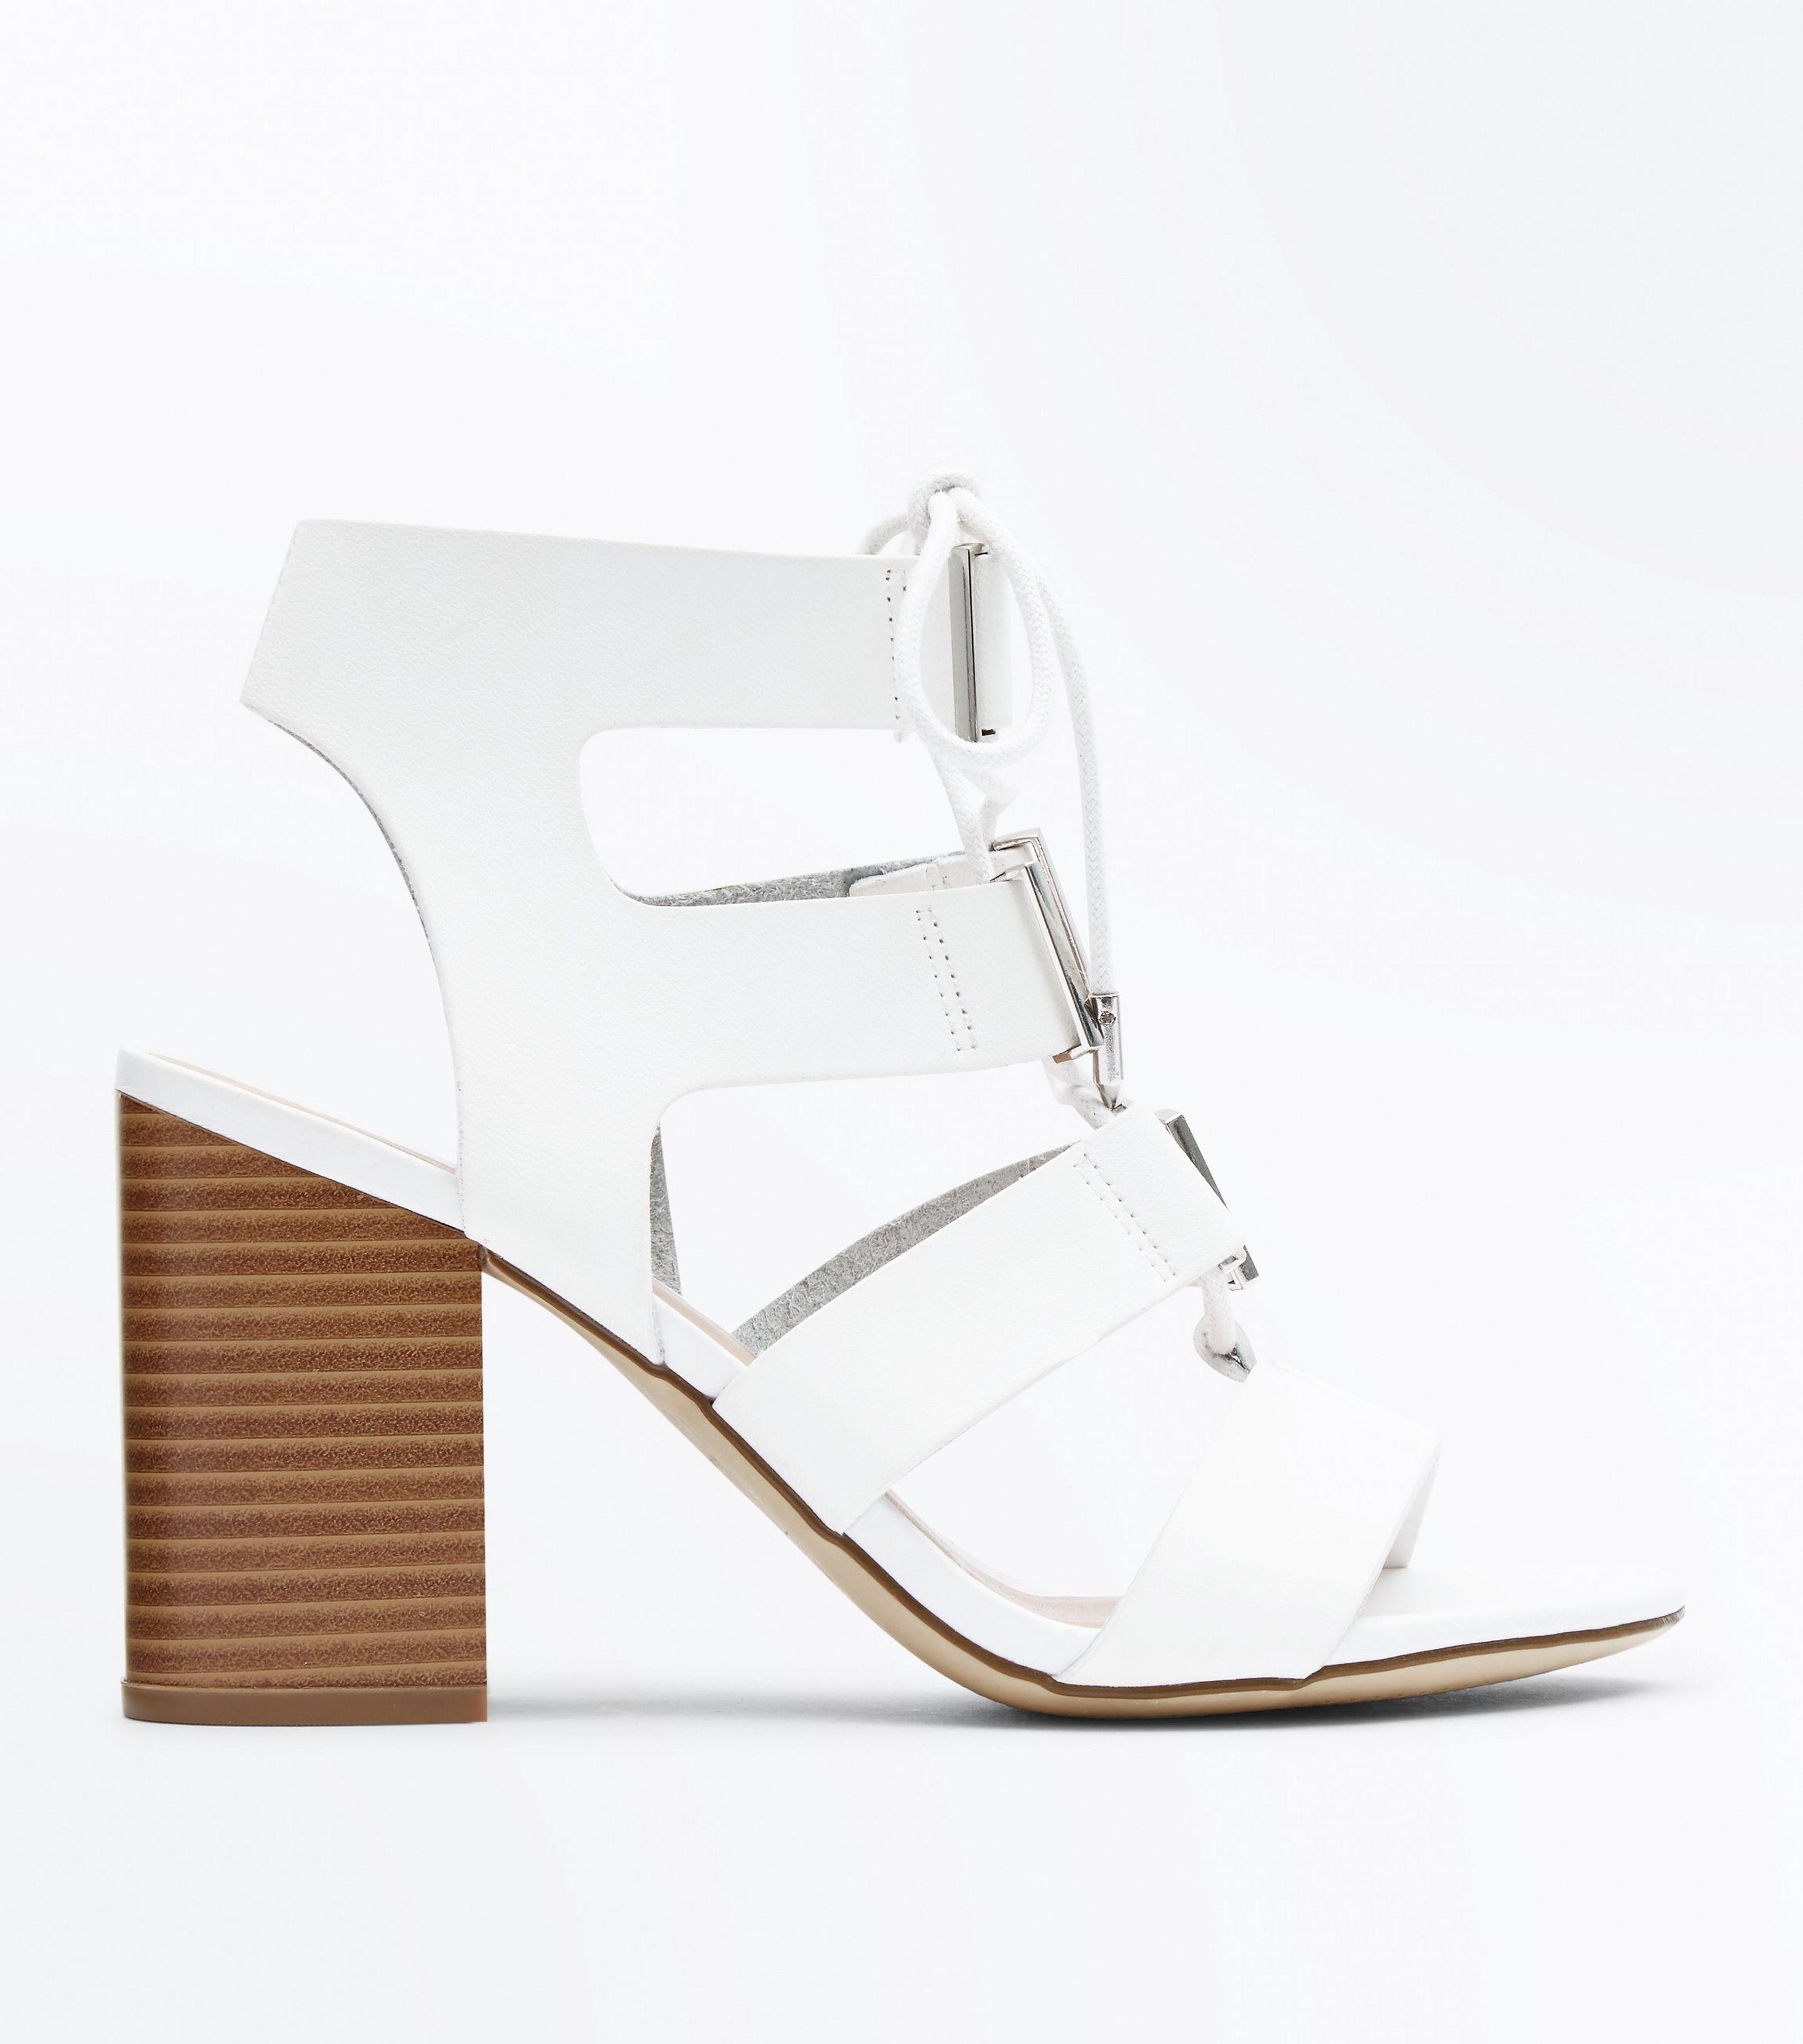 54eccf16a2c New Look White Lace Up Wooden Block Heel Sandals in White - Lyst